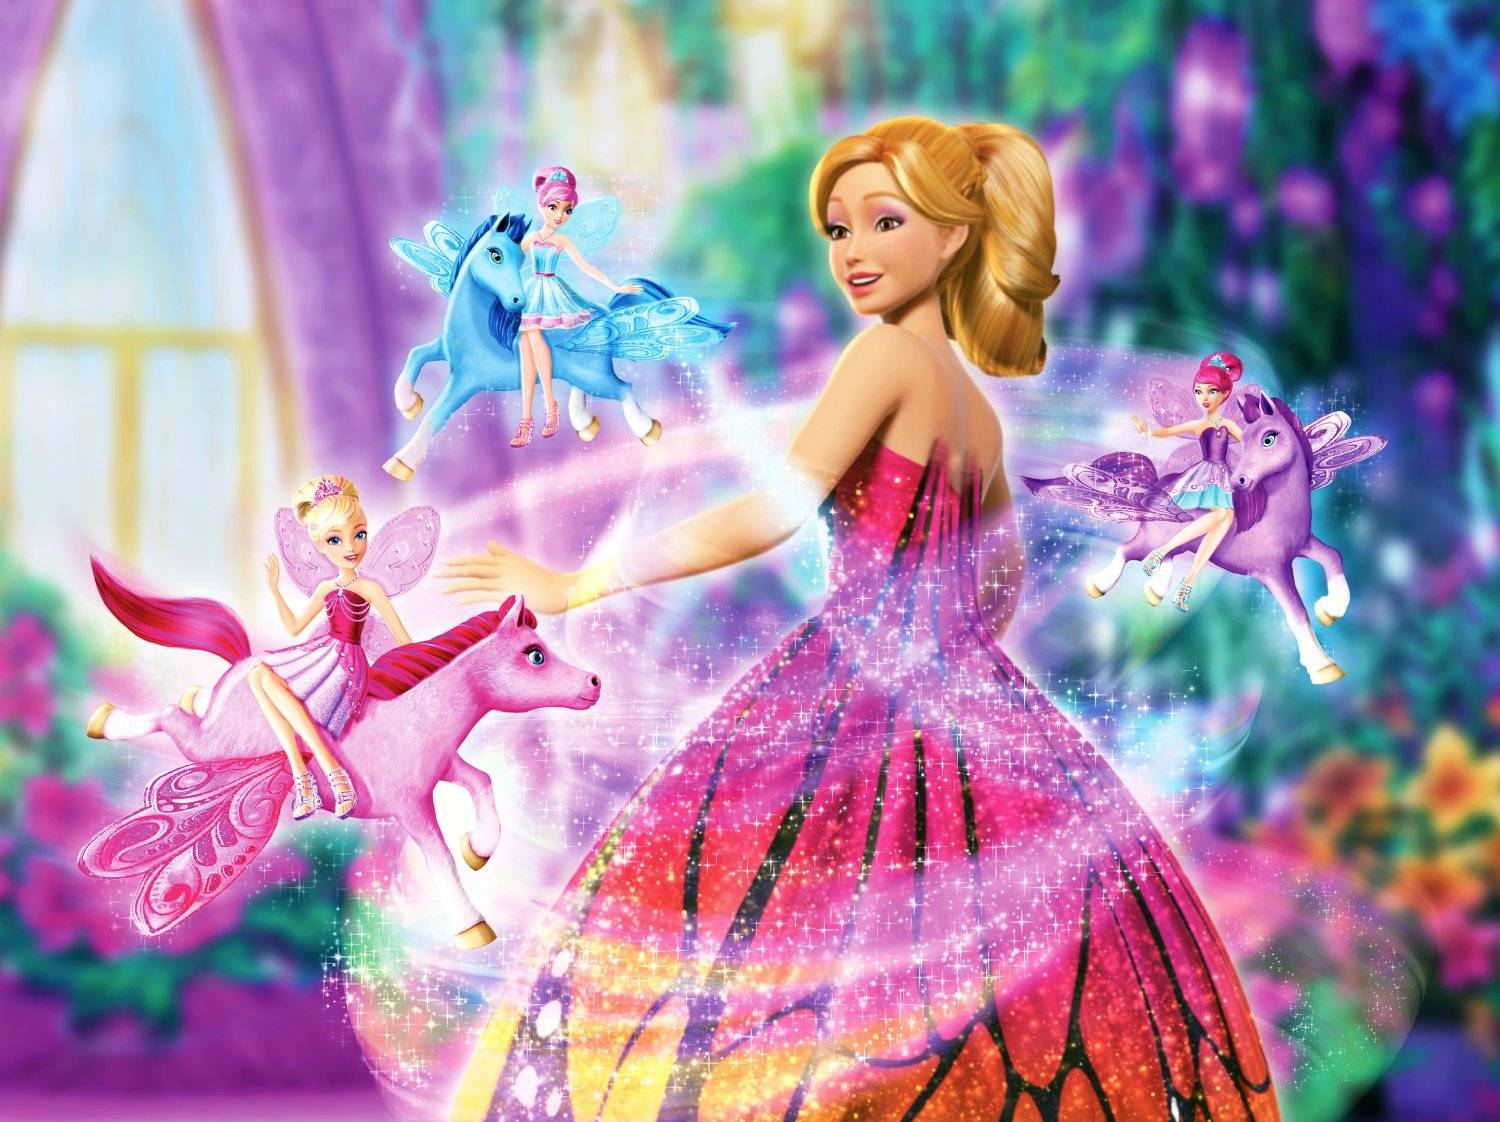 Hd wallpaper doll - Barbie Mariposa And The Fairy Princess Wallpaper 2 Barbie Dolls